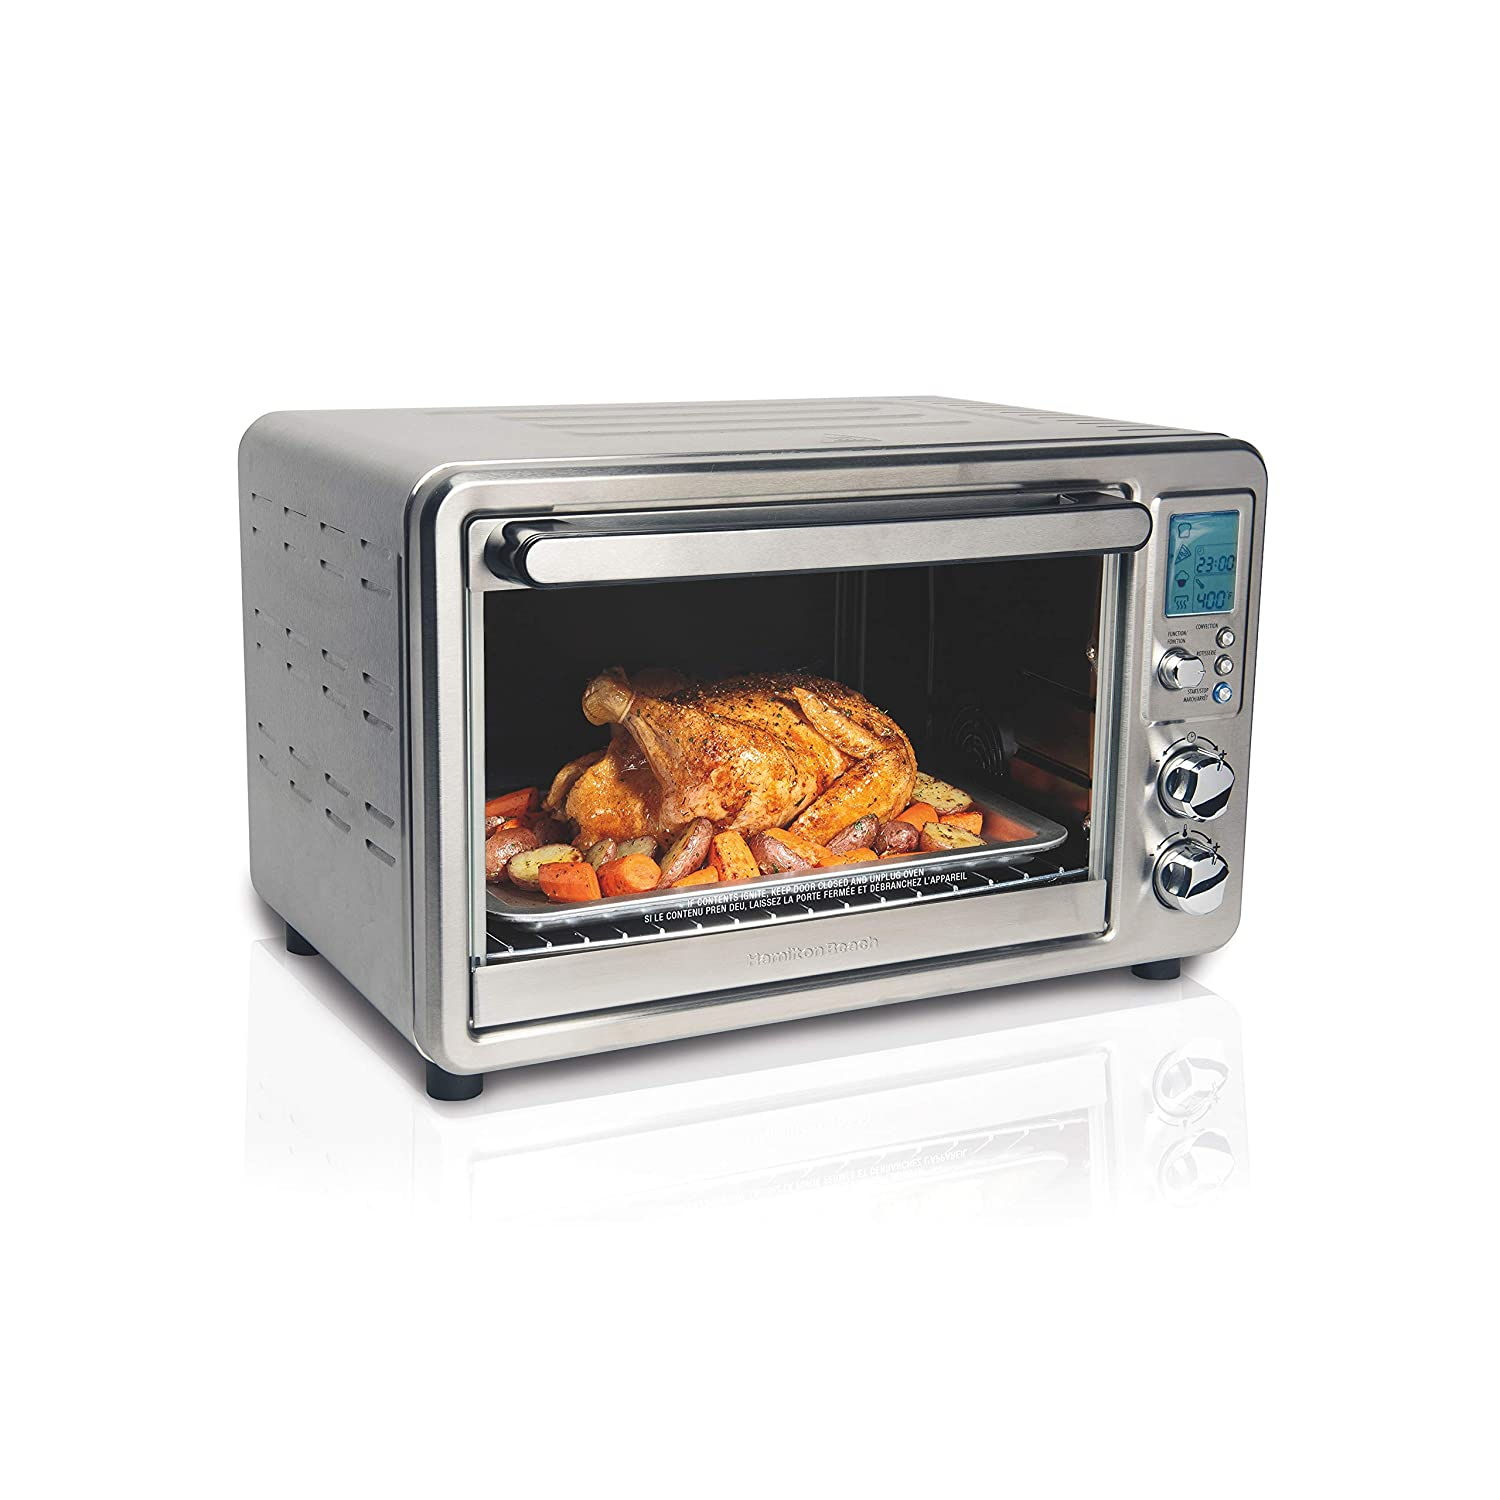 Hamilton Beach Digital Convection Countertop Oven, Large 6-Slice Capacity, Rotisserie, Stainless Steel (31190C)